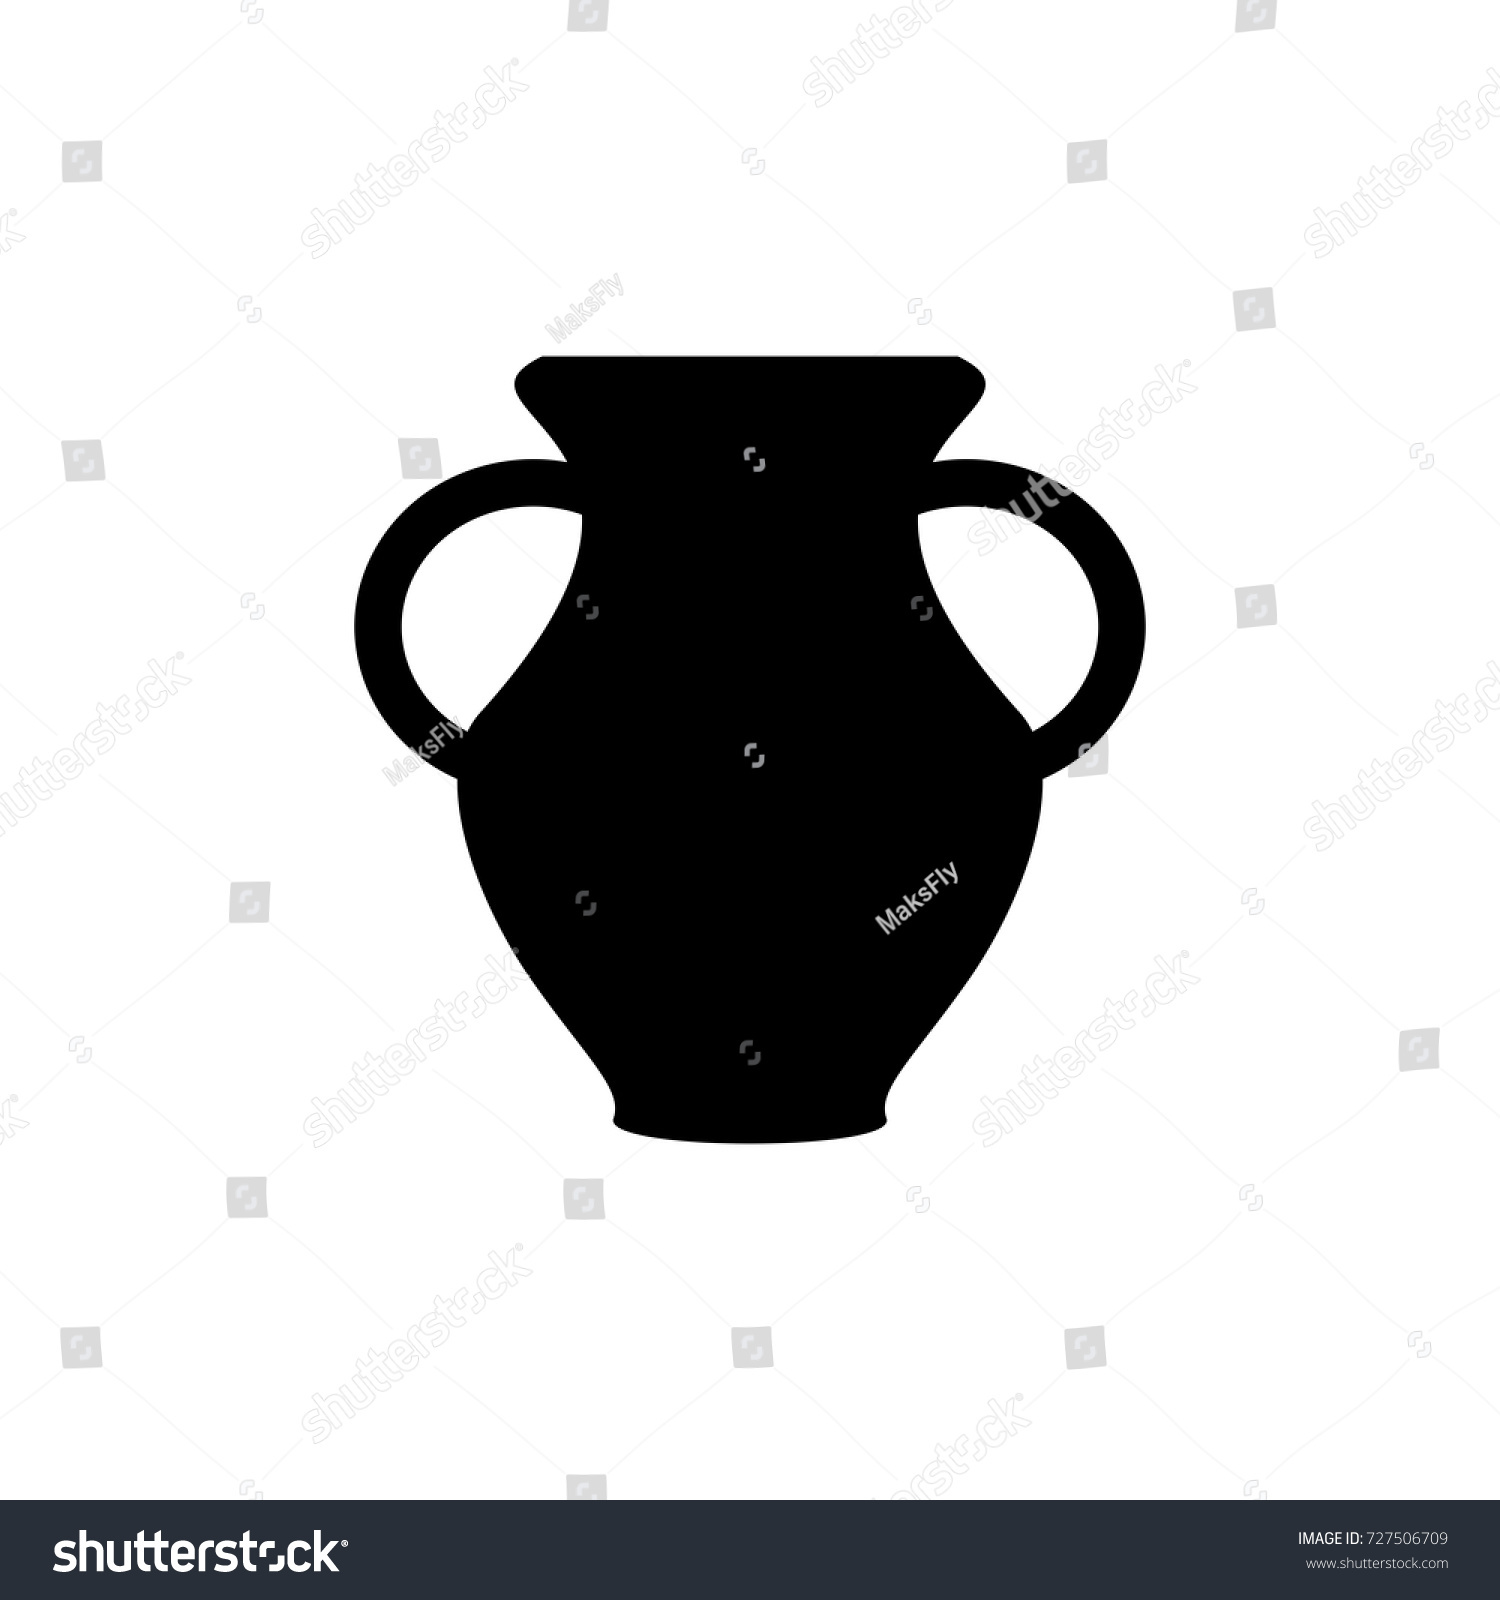 Vase two handles icon black sign stock vector 727506709 shutterstock vase with two handles icon black sign design reviewsmspy